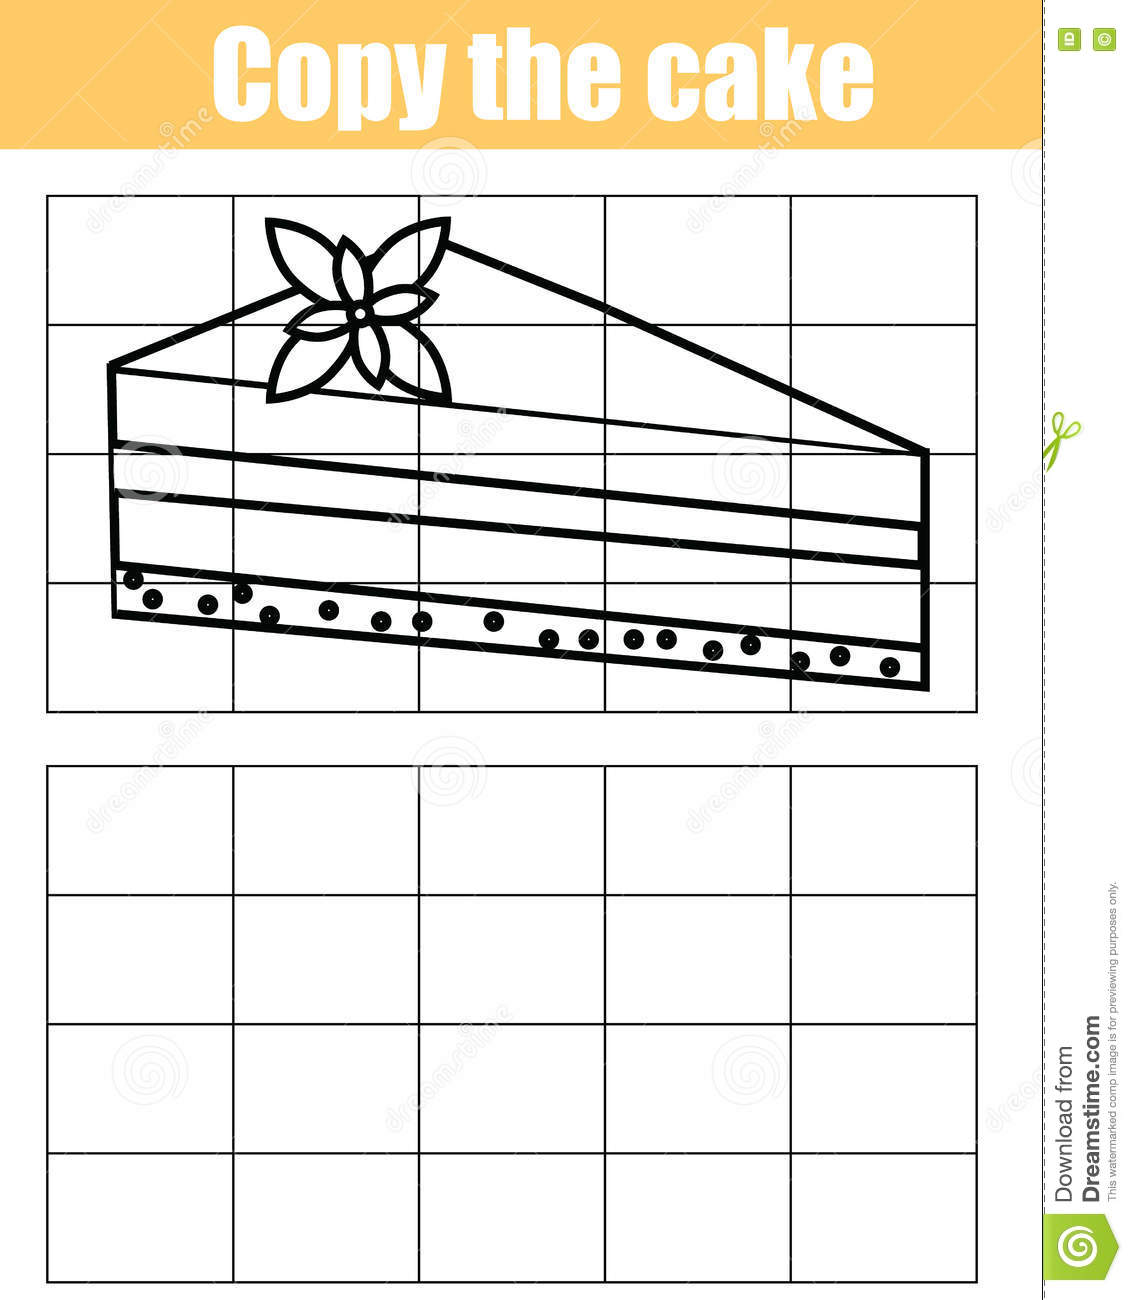 Worksheet Grid Drawing Worksheets Worksheet Fun